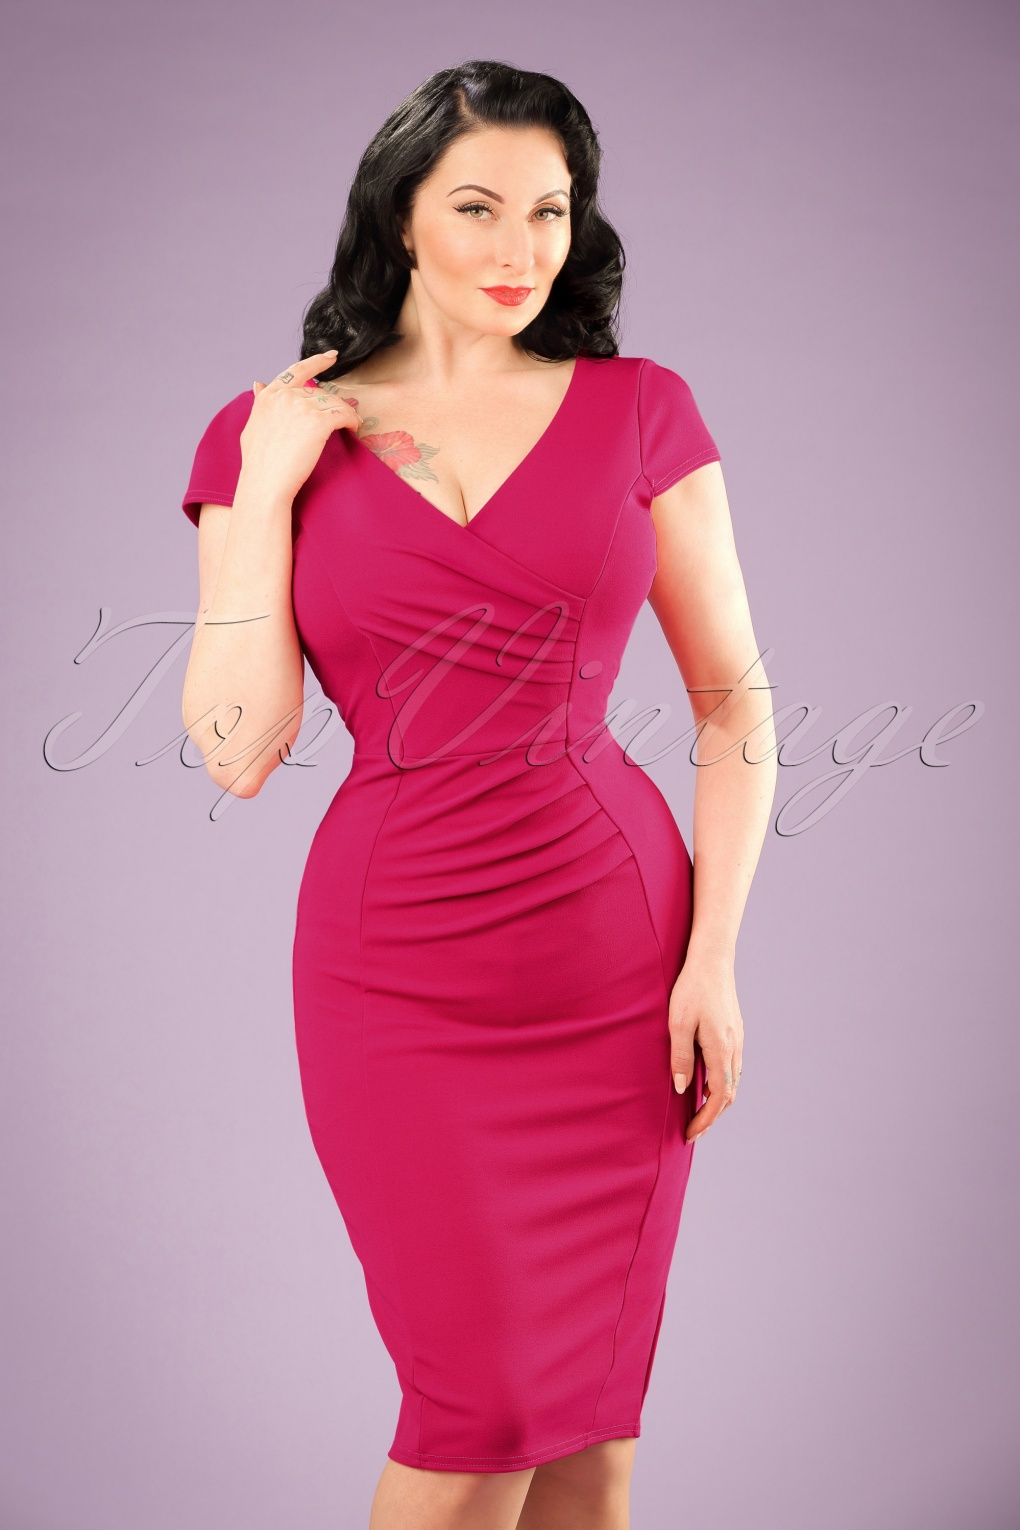 1960s Style Dresses- Retro Inspired Fashion 50s Brenda Pencil Dress in Magenta £36.36 AT vintagedancer.com